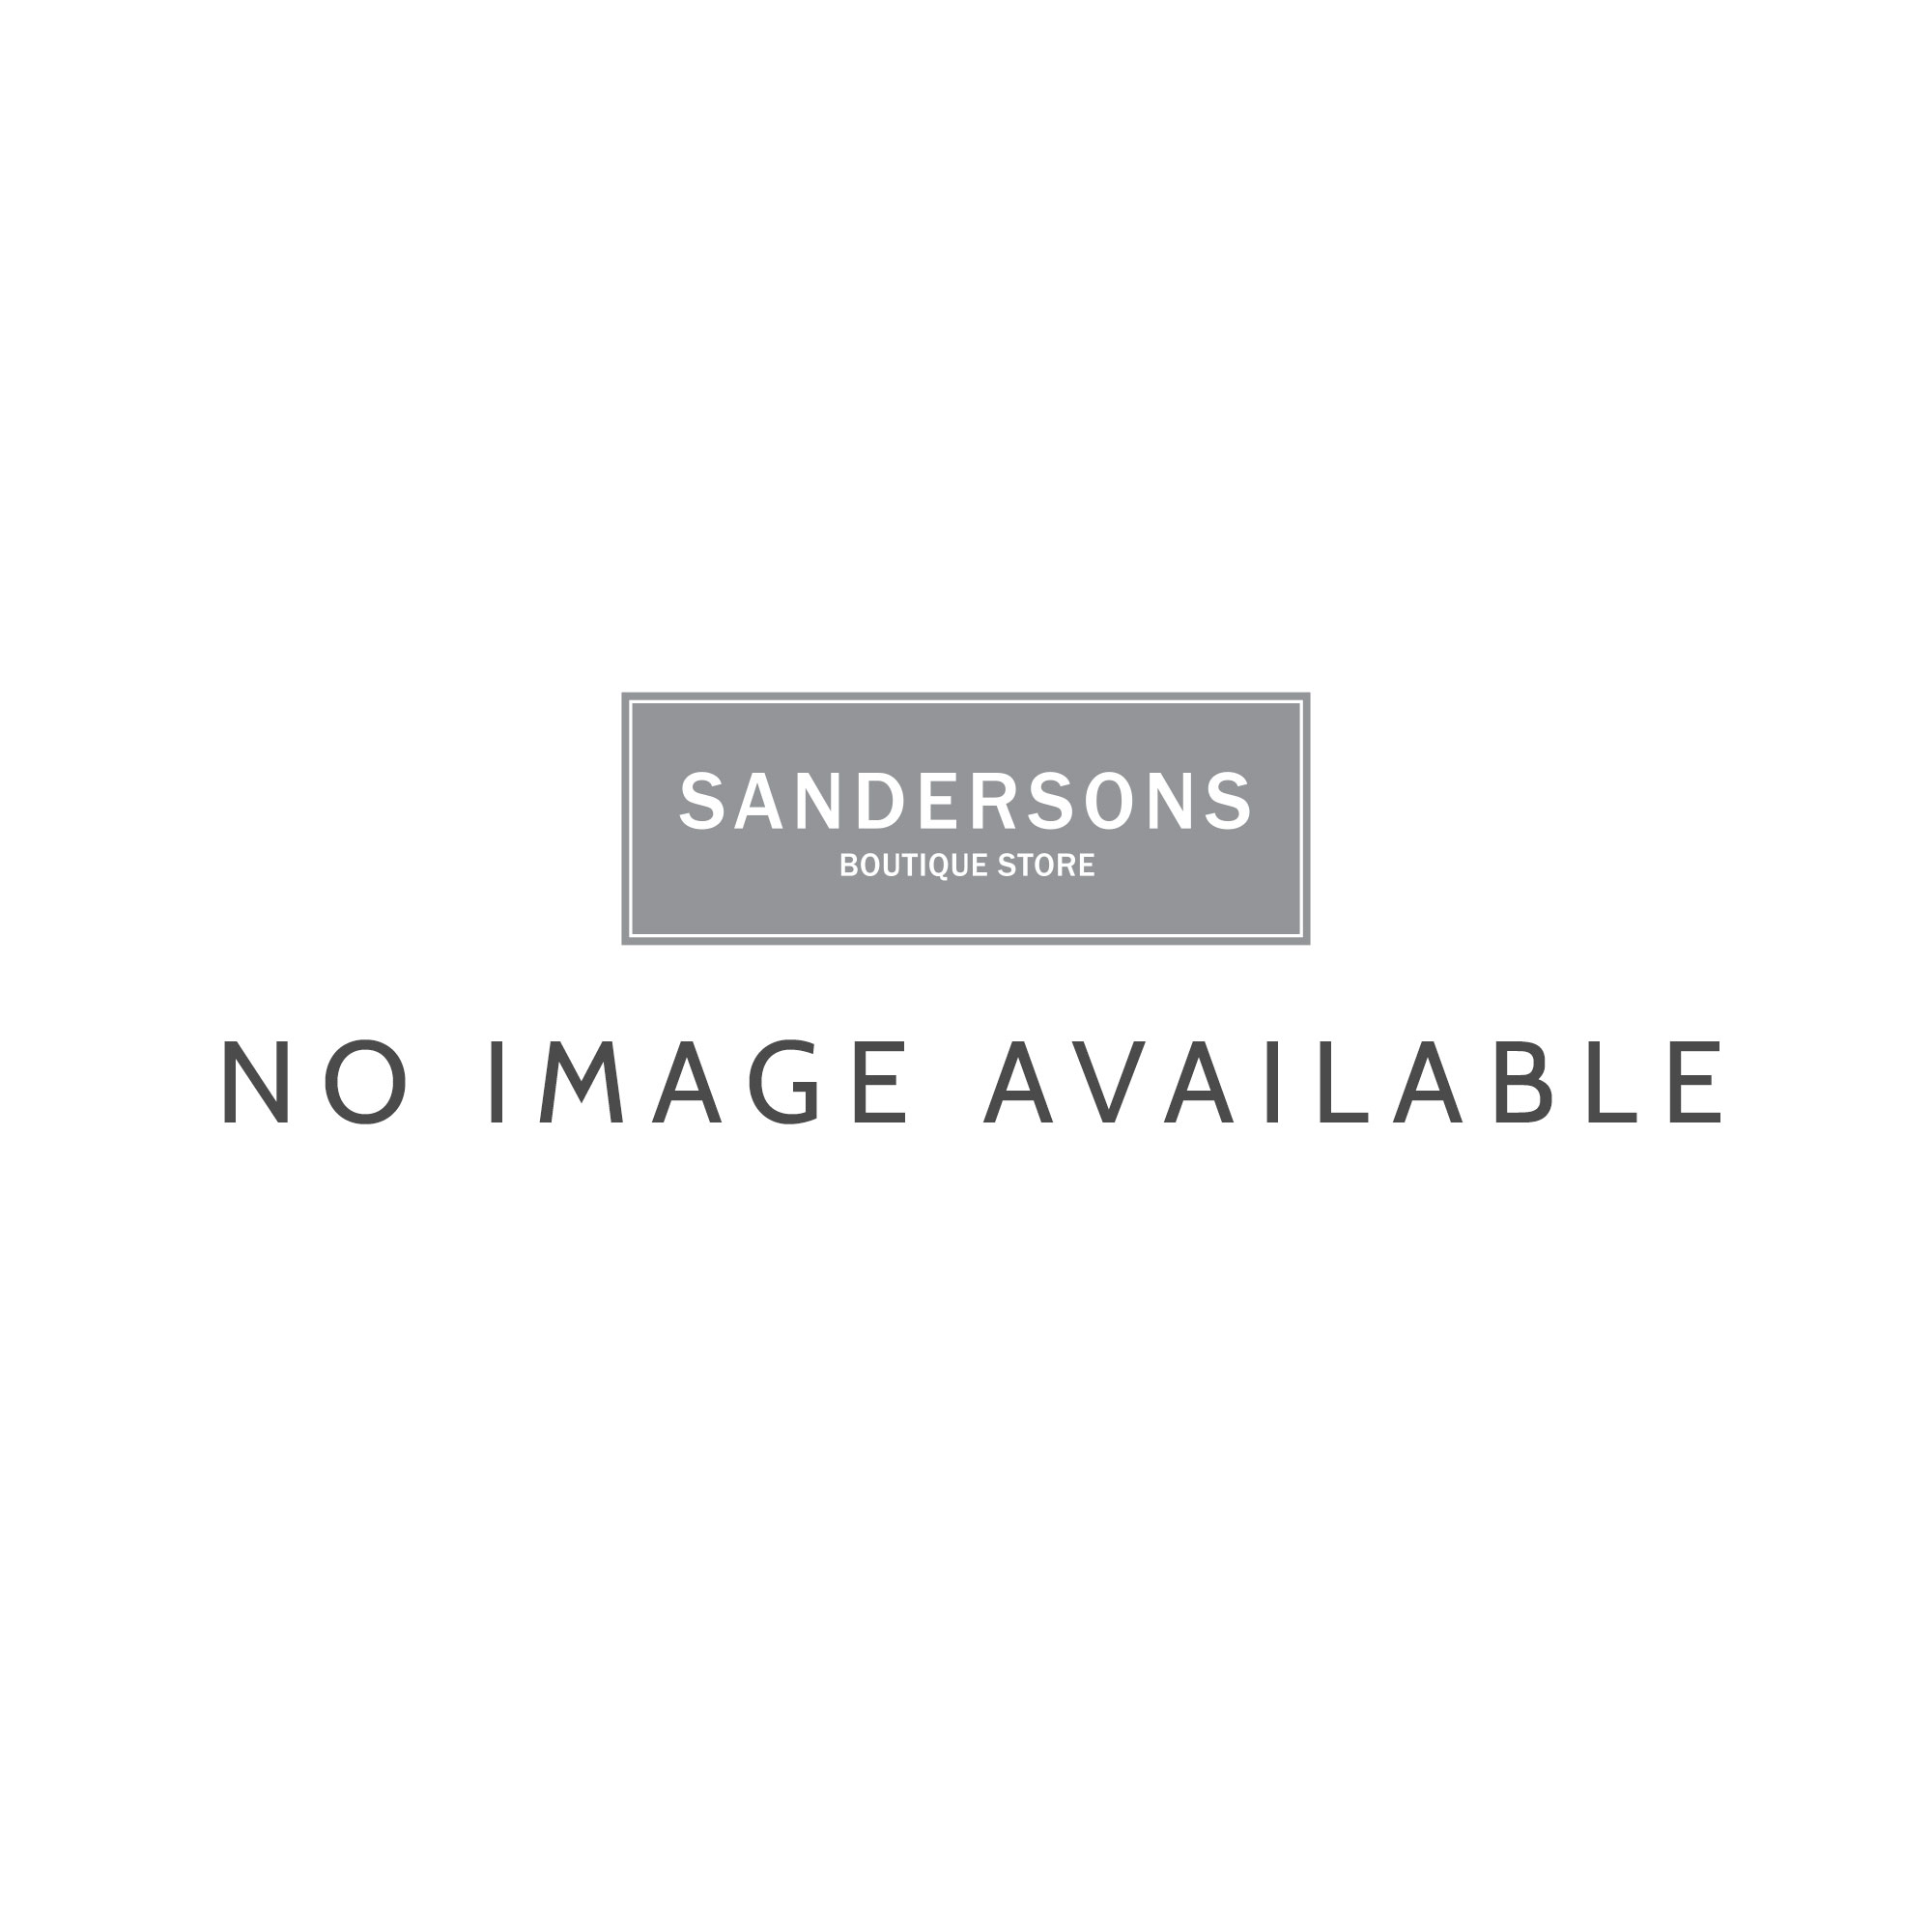 BARBOUR Bowmore knit long cardigan - Ladies from Sandersons ...